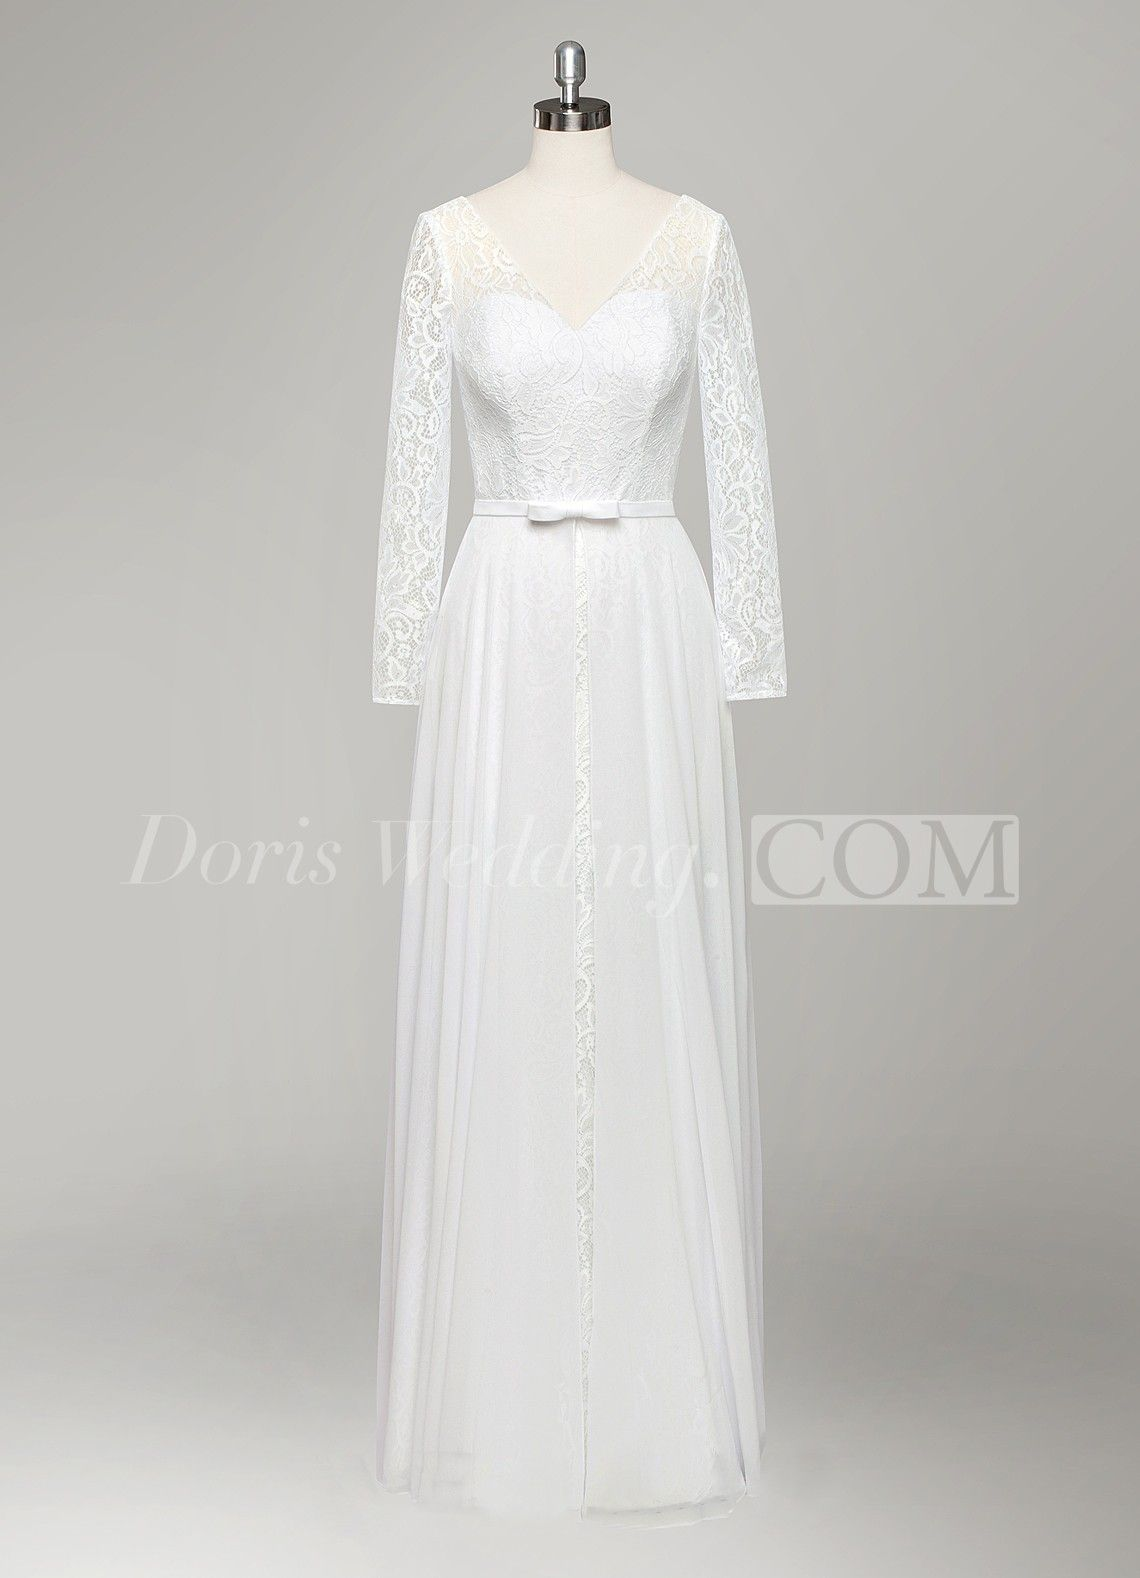 Vneck long sleeve aline lace and chiffon wedding dress with pleats